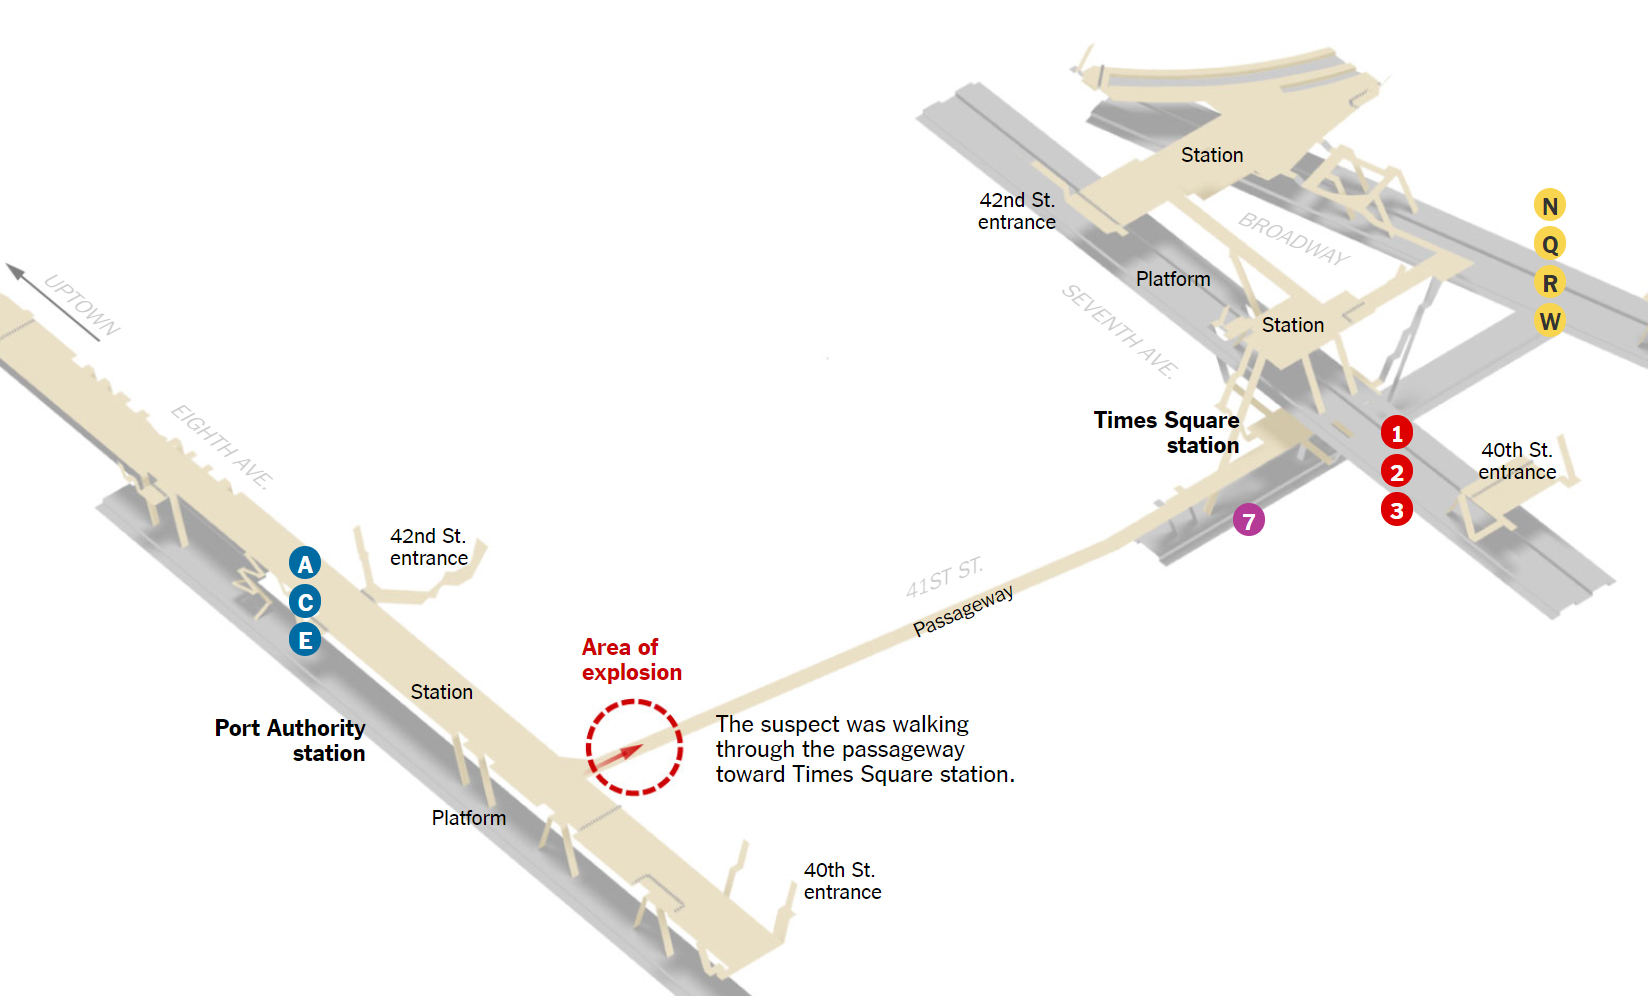 Graphic on New York Times explaining the explosion at Port Authority with the help of model we provided